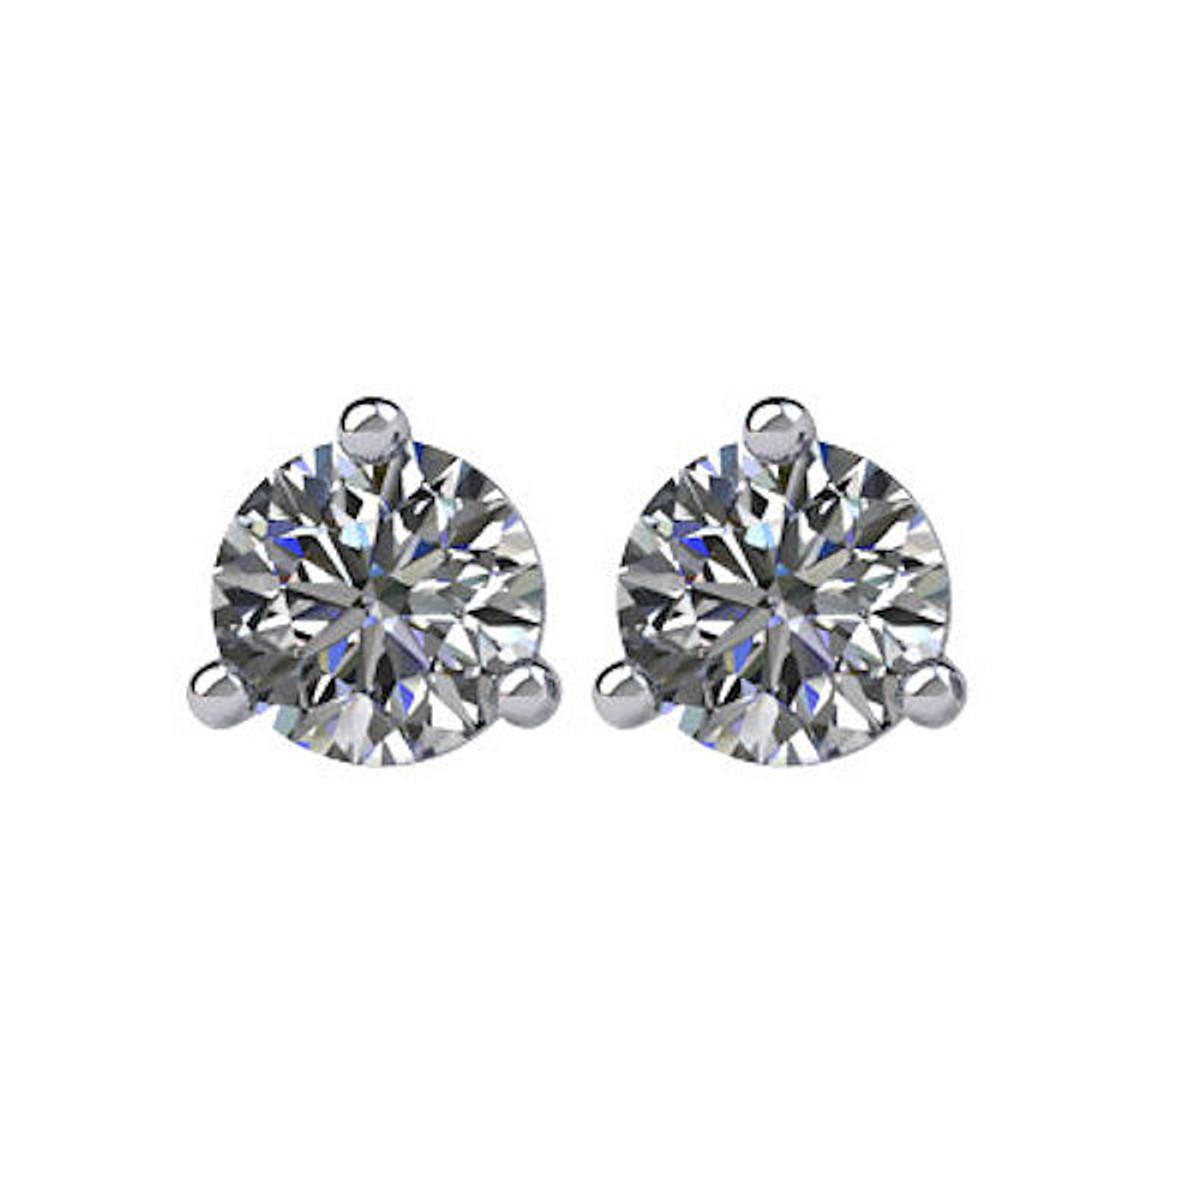 3-Prong Cocktail Round 1/4 CT TW Stud Earrings